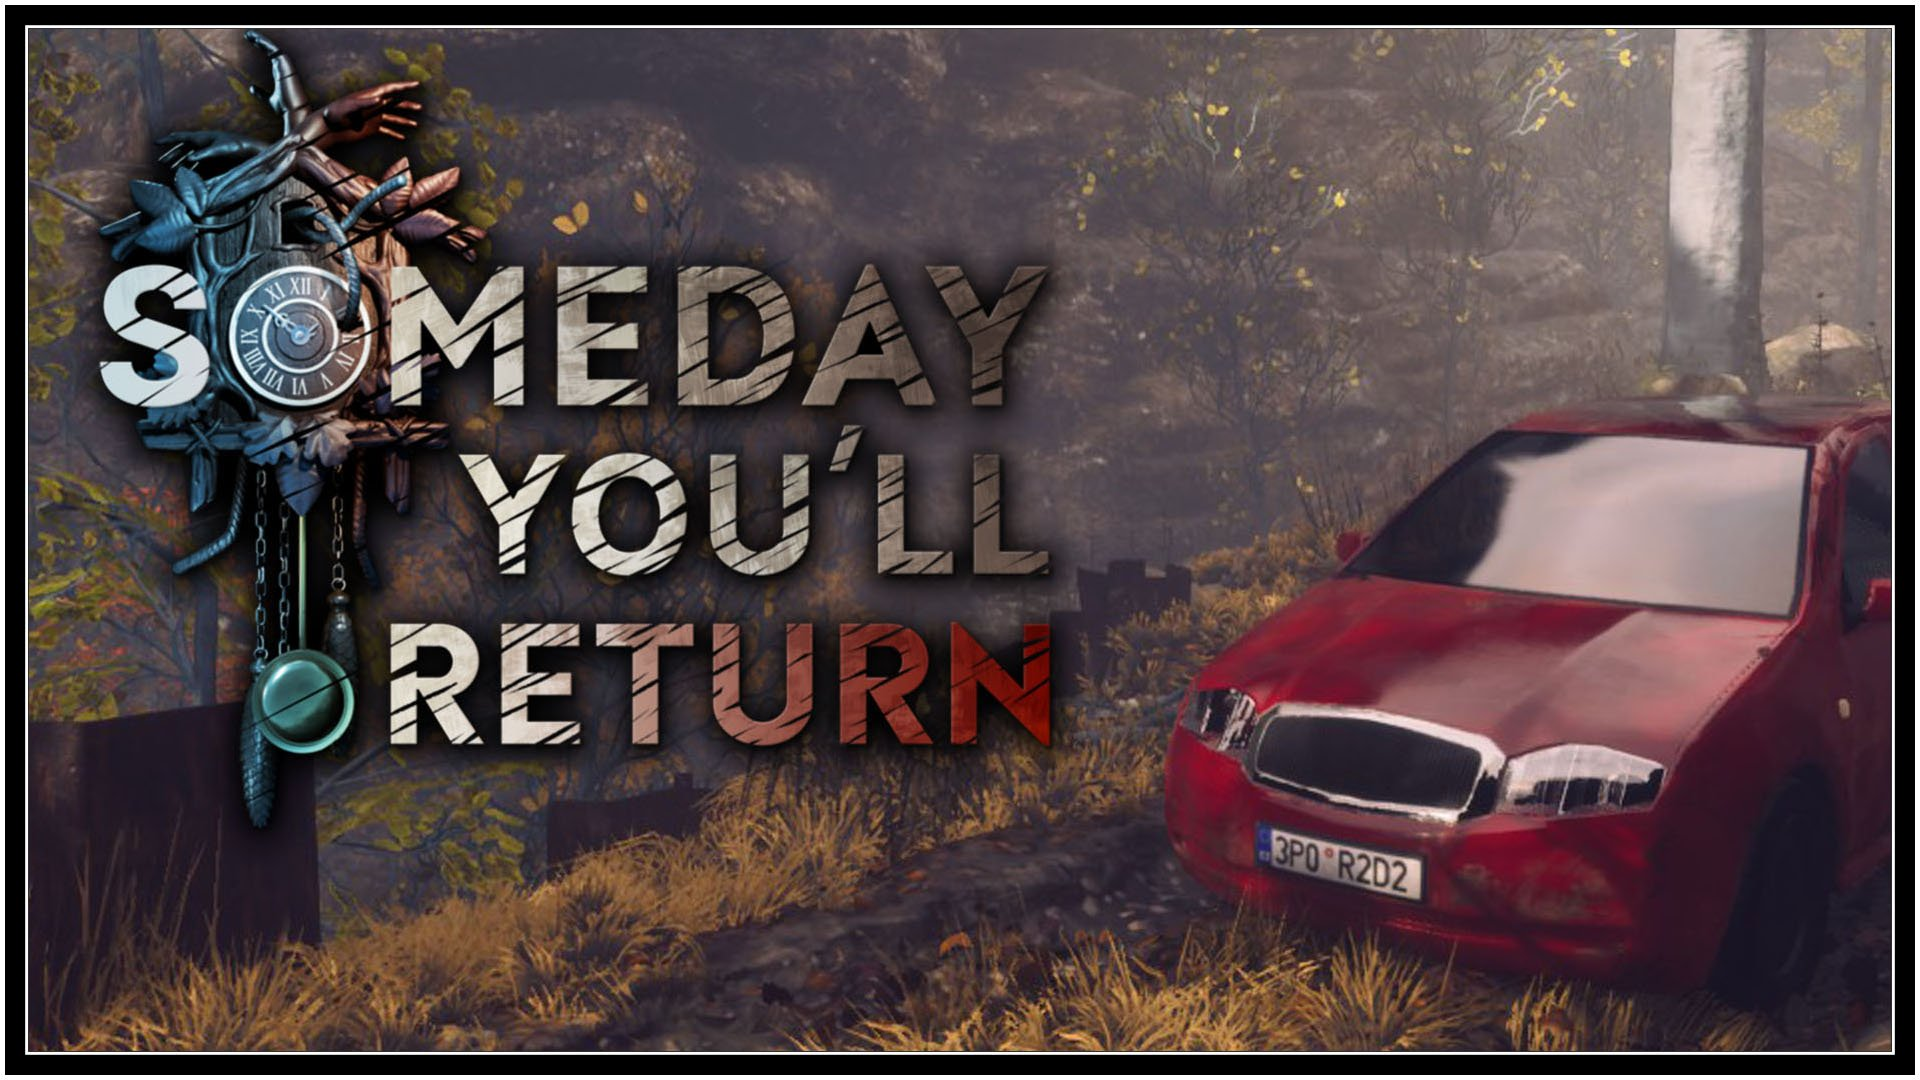 Someday You'll Return (PC) Review